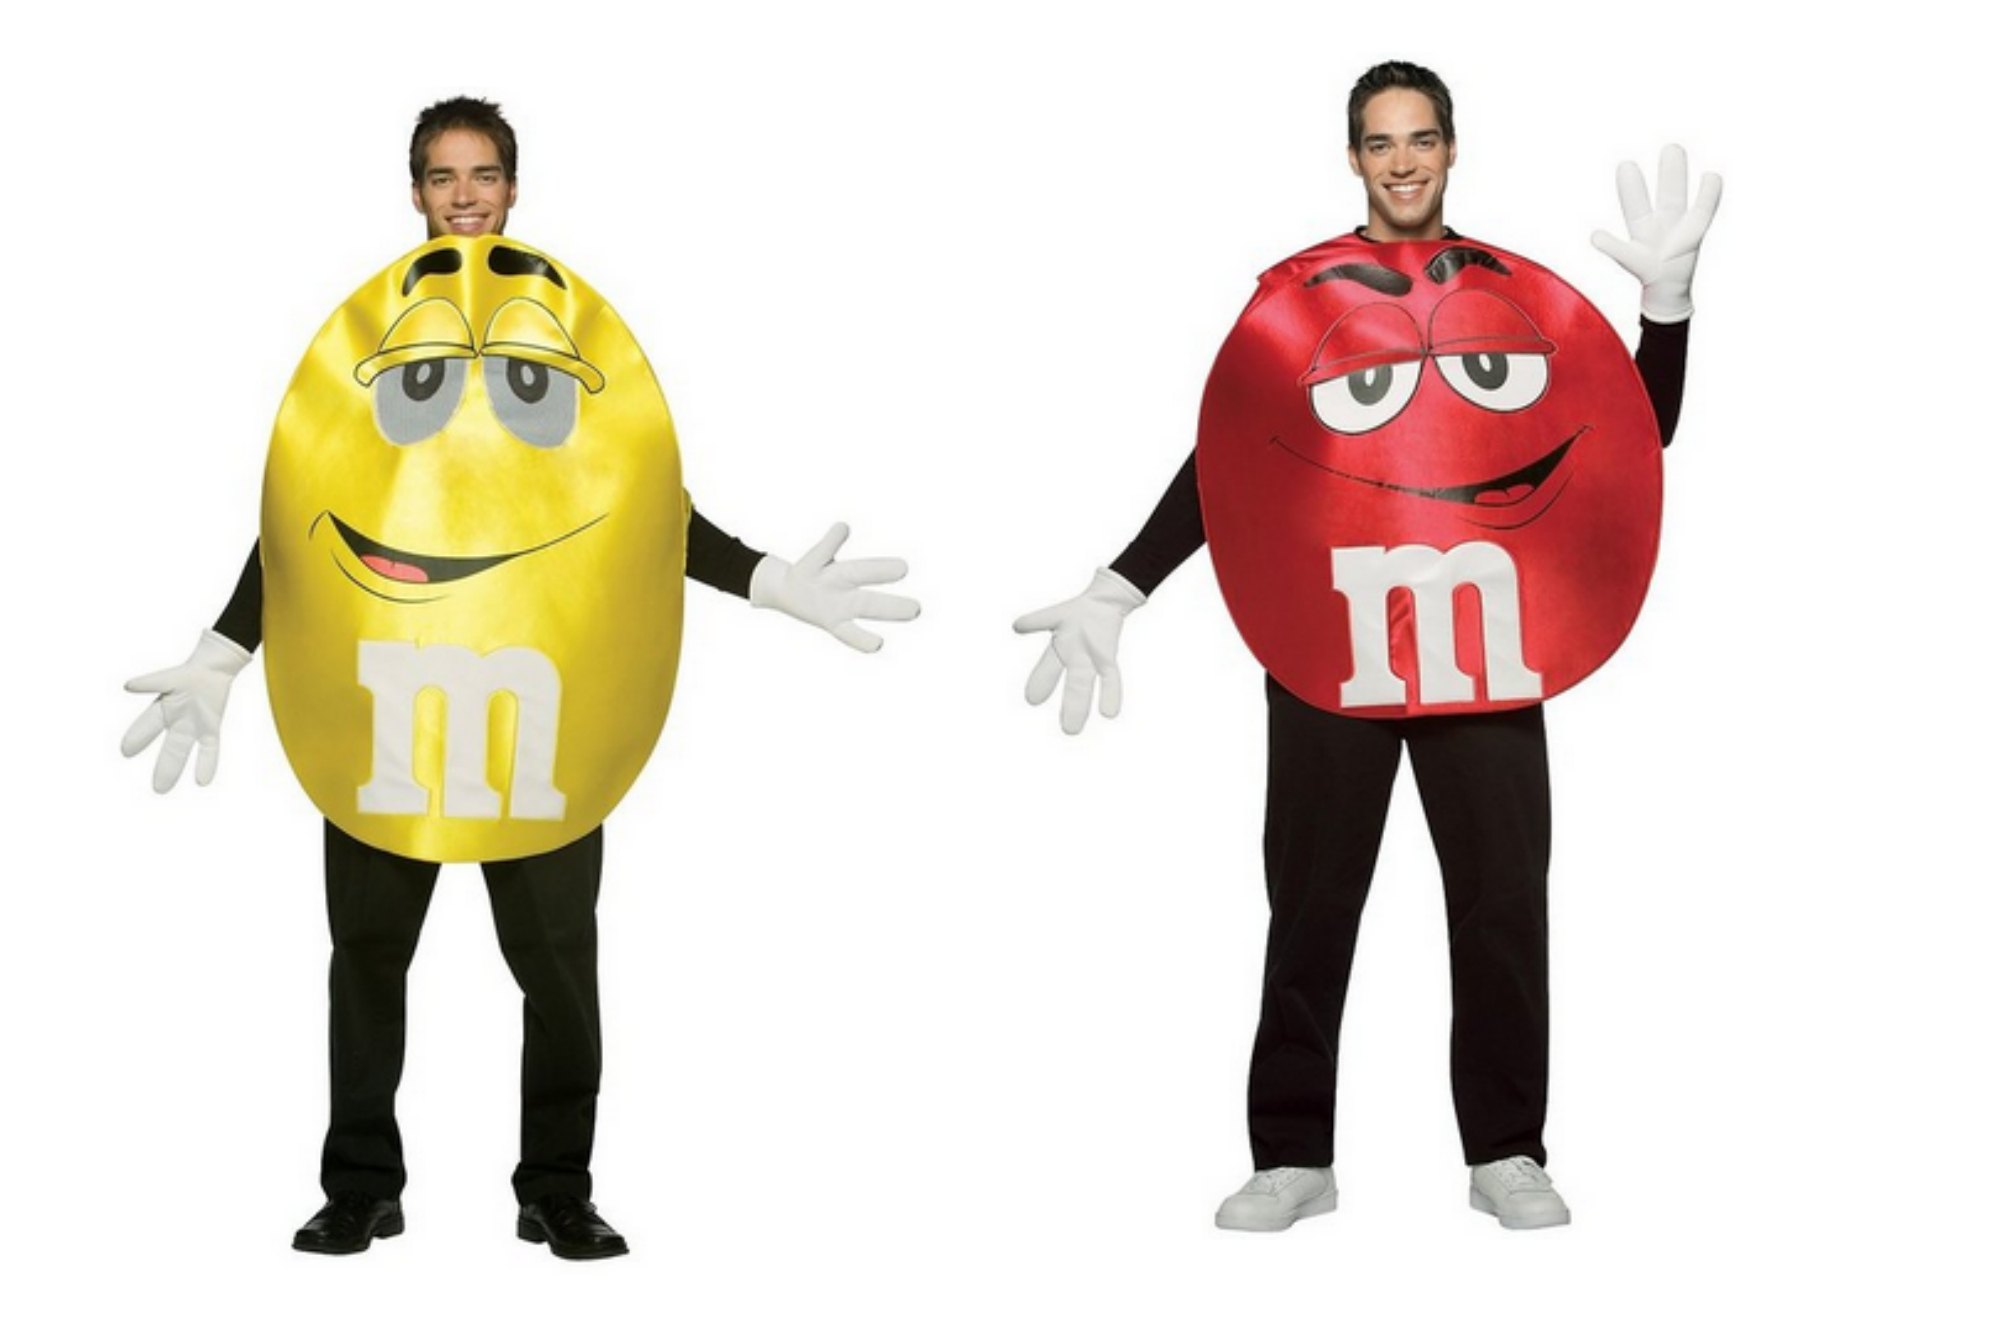 Red and yellow m&ms costumes